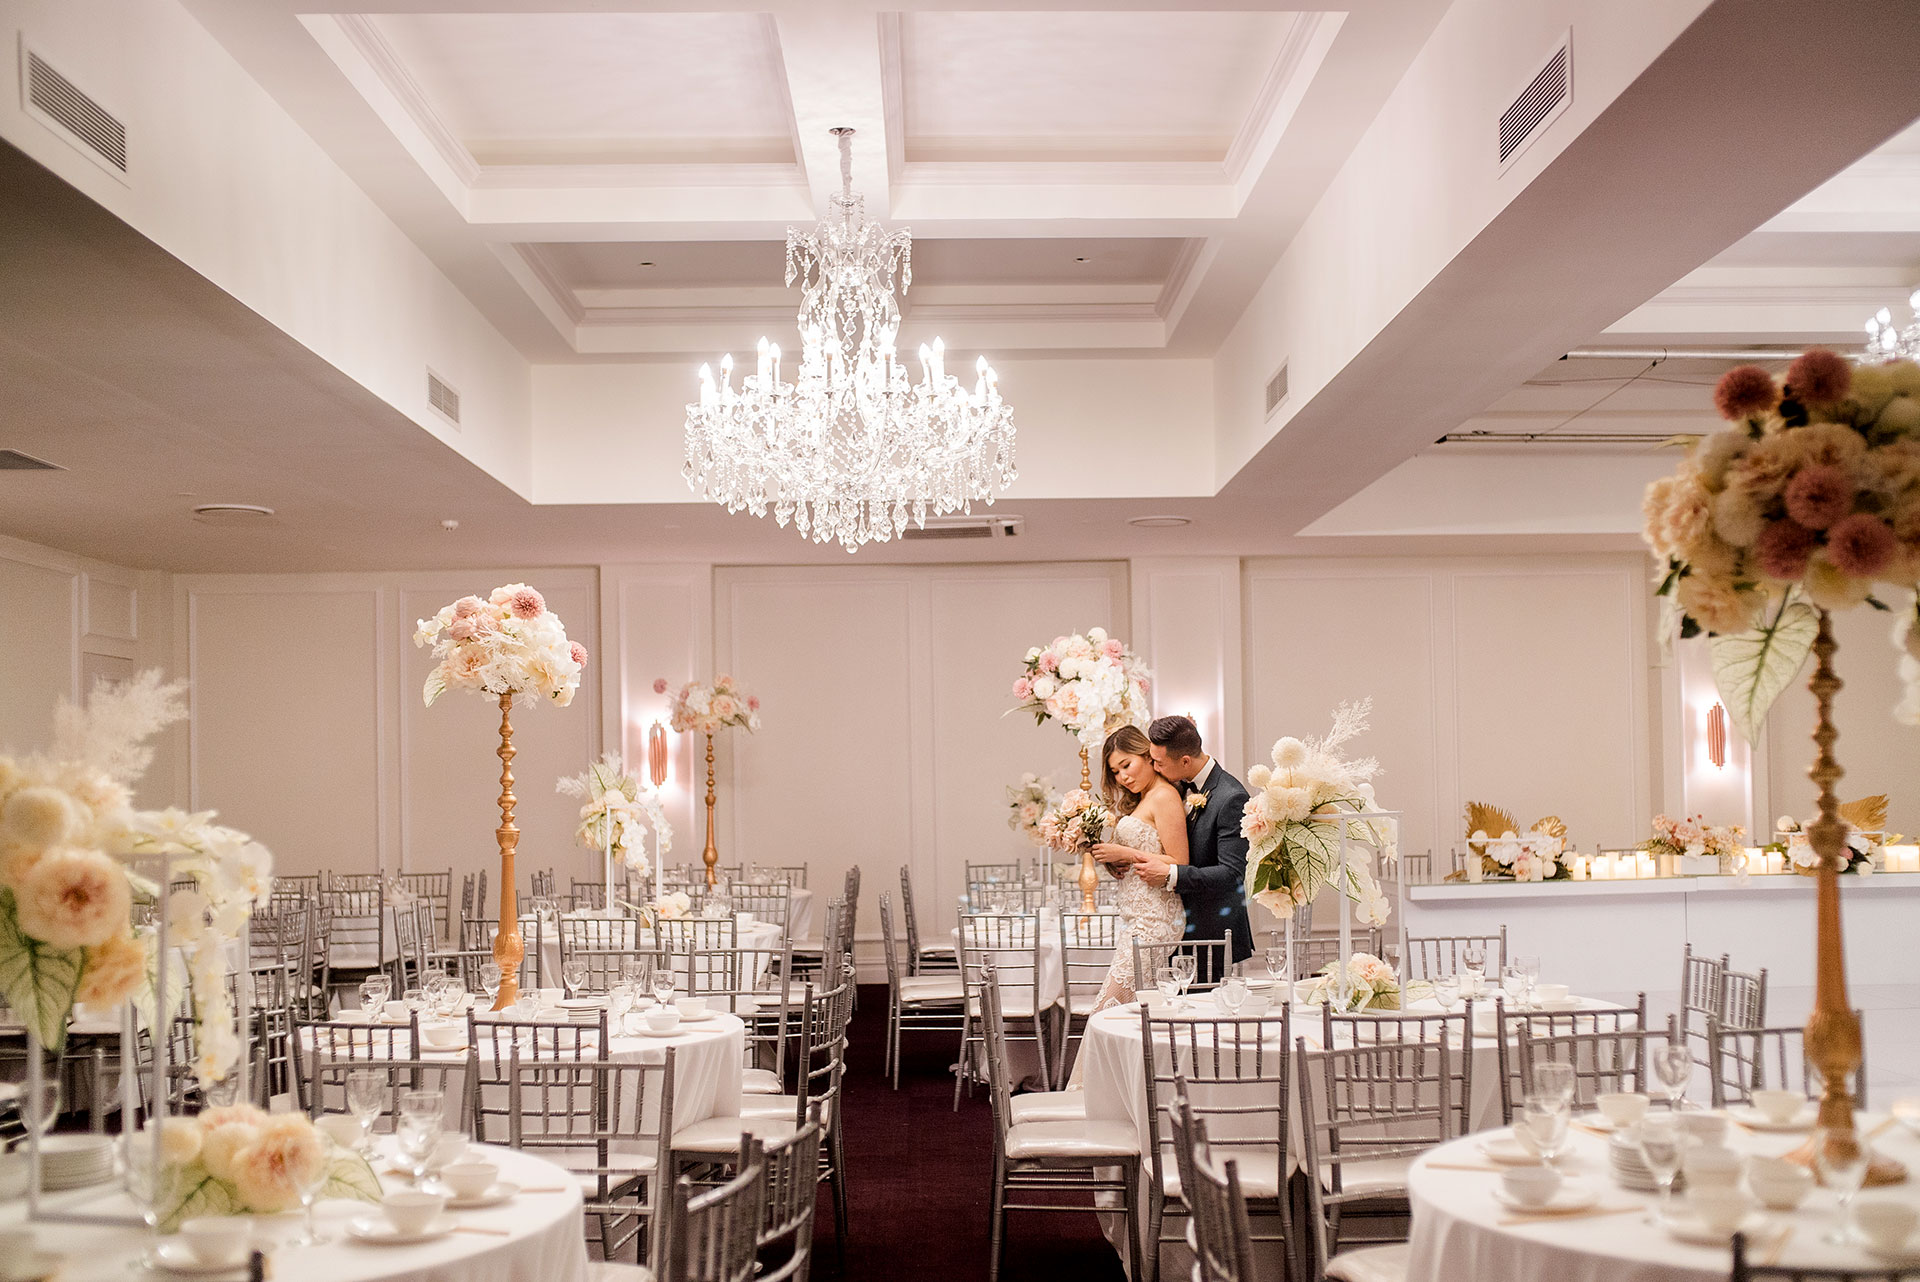 cabramatta-seafood-wedding-venue.jpg